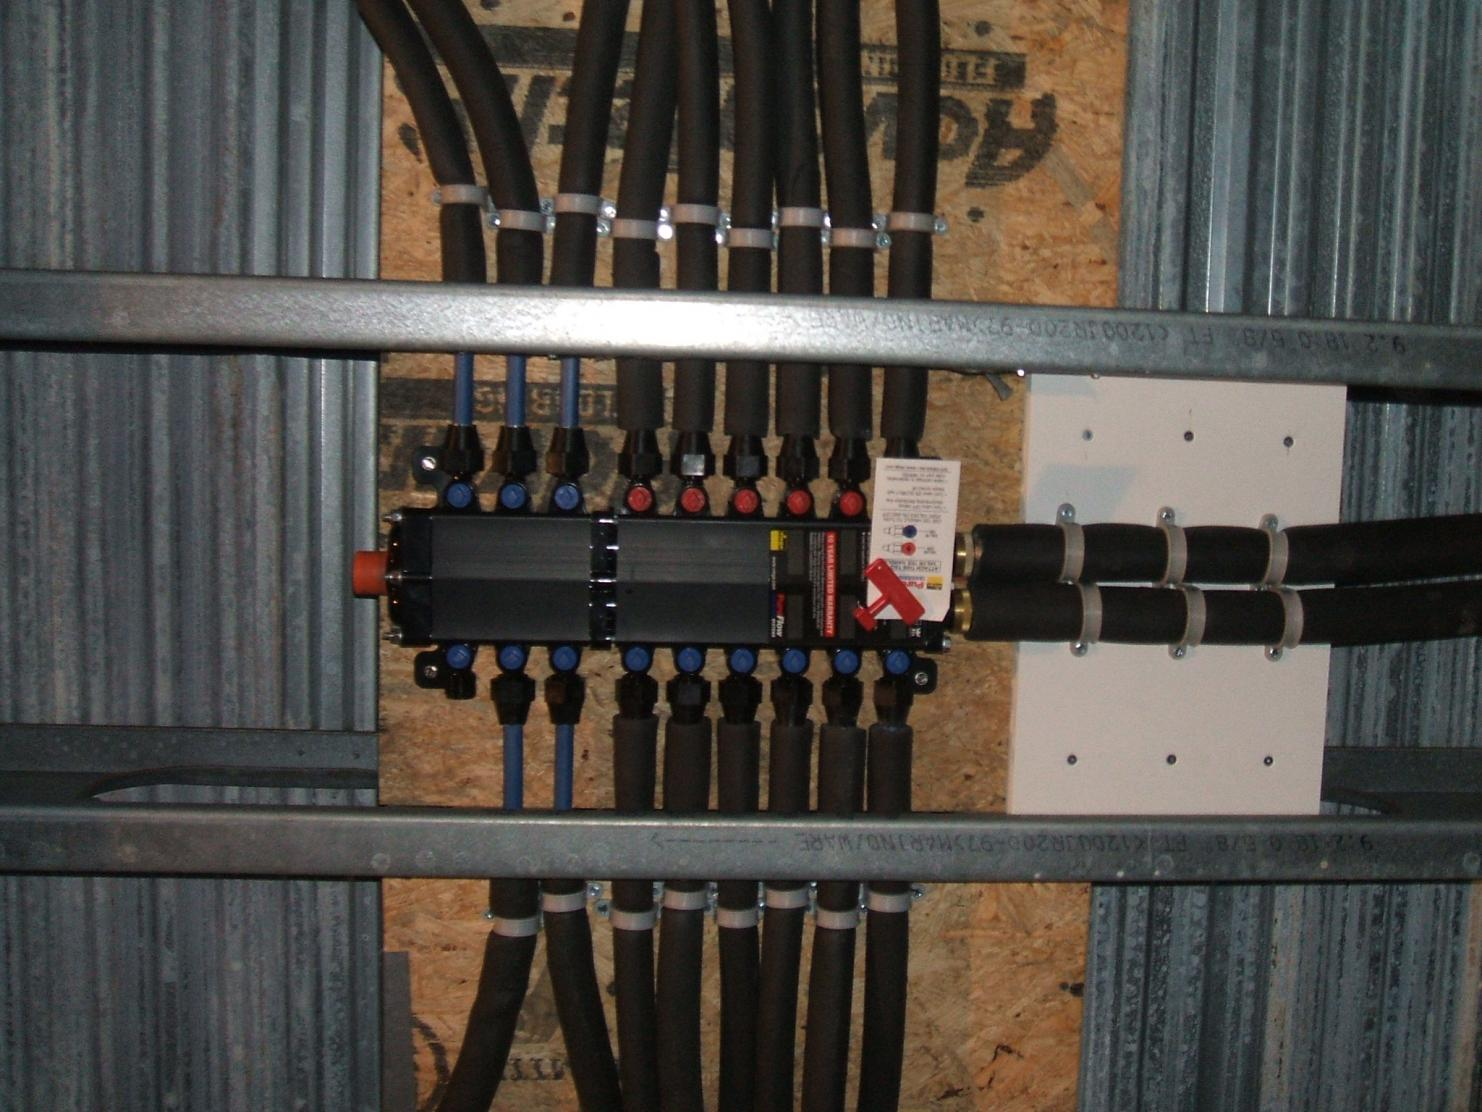 Pex... Best Thing Since Sliced Bread? - Page 4 - Plumbing - Contractor ...